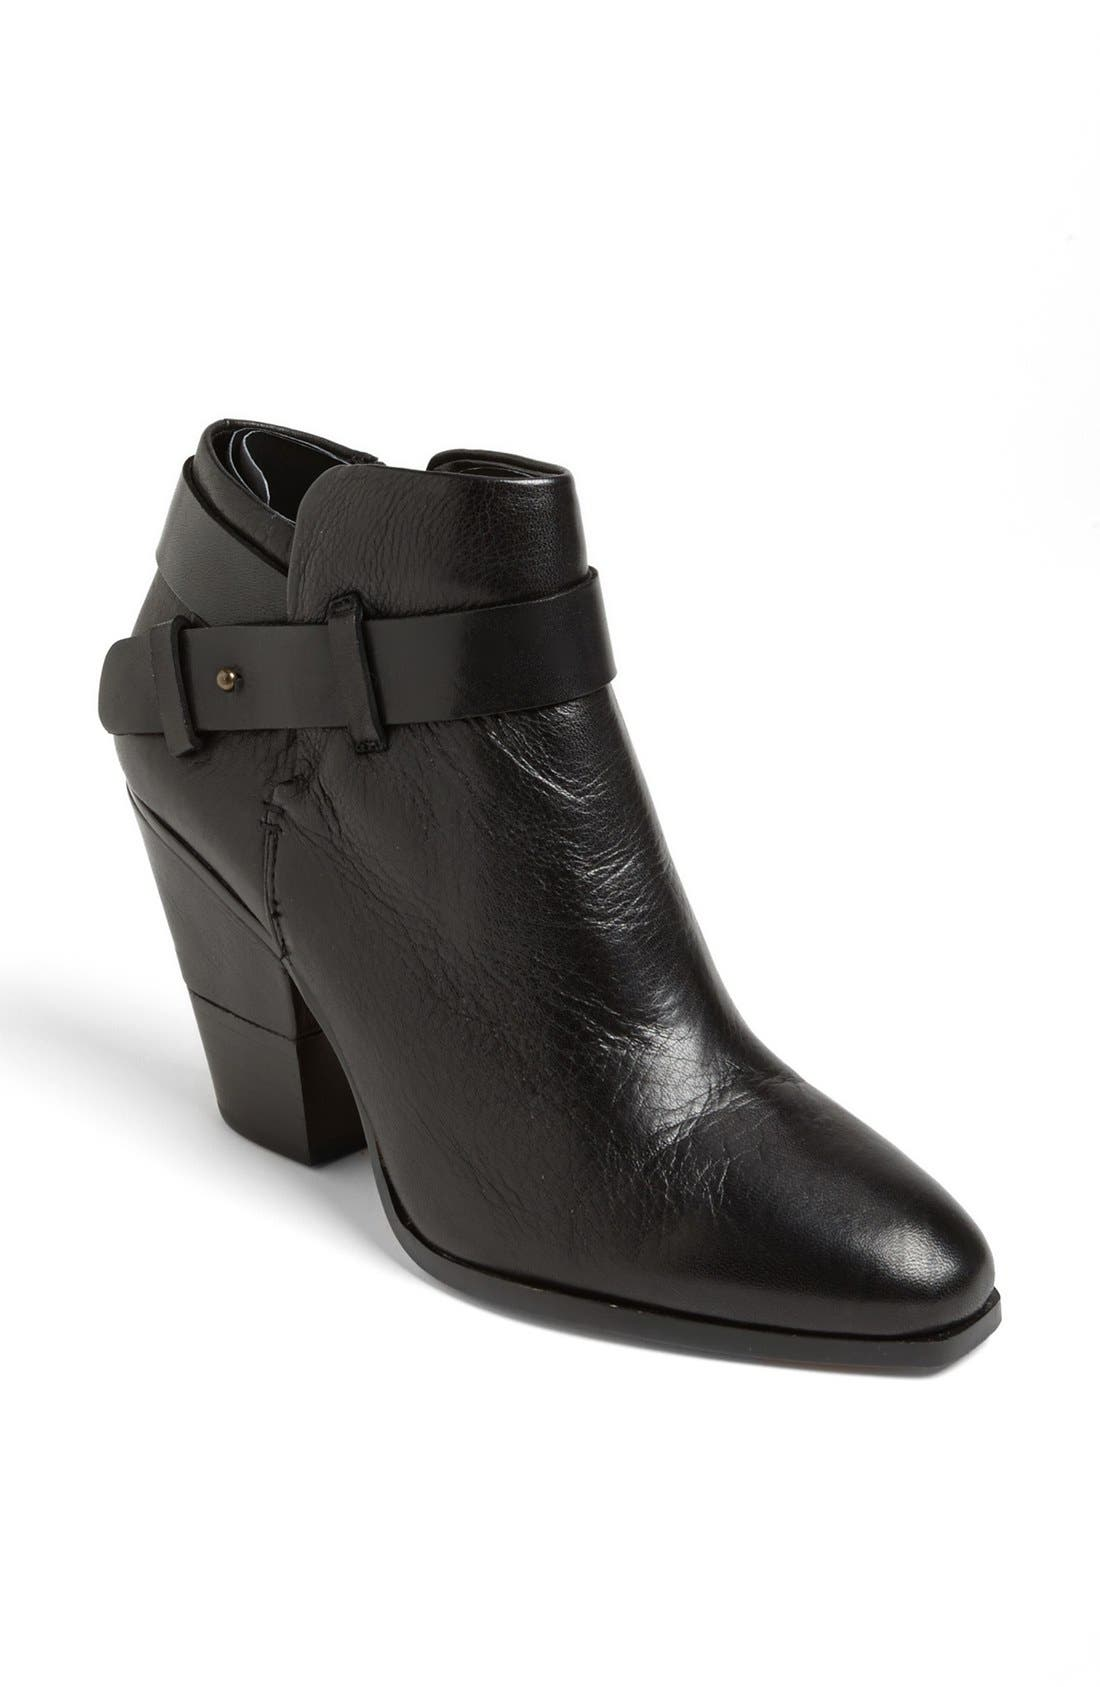 DOLCE VITA 'Hilary' Bootie, Main, color, 001